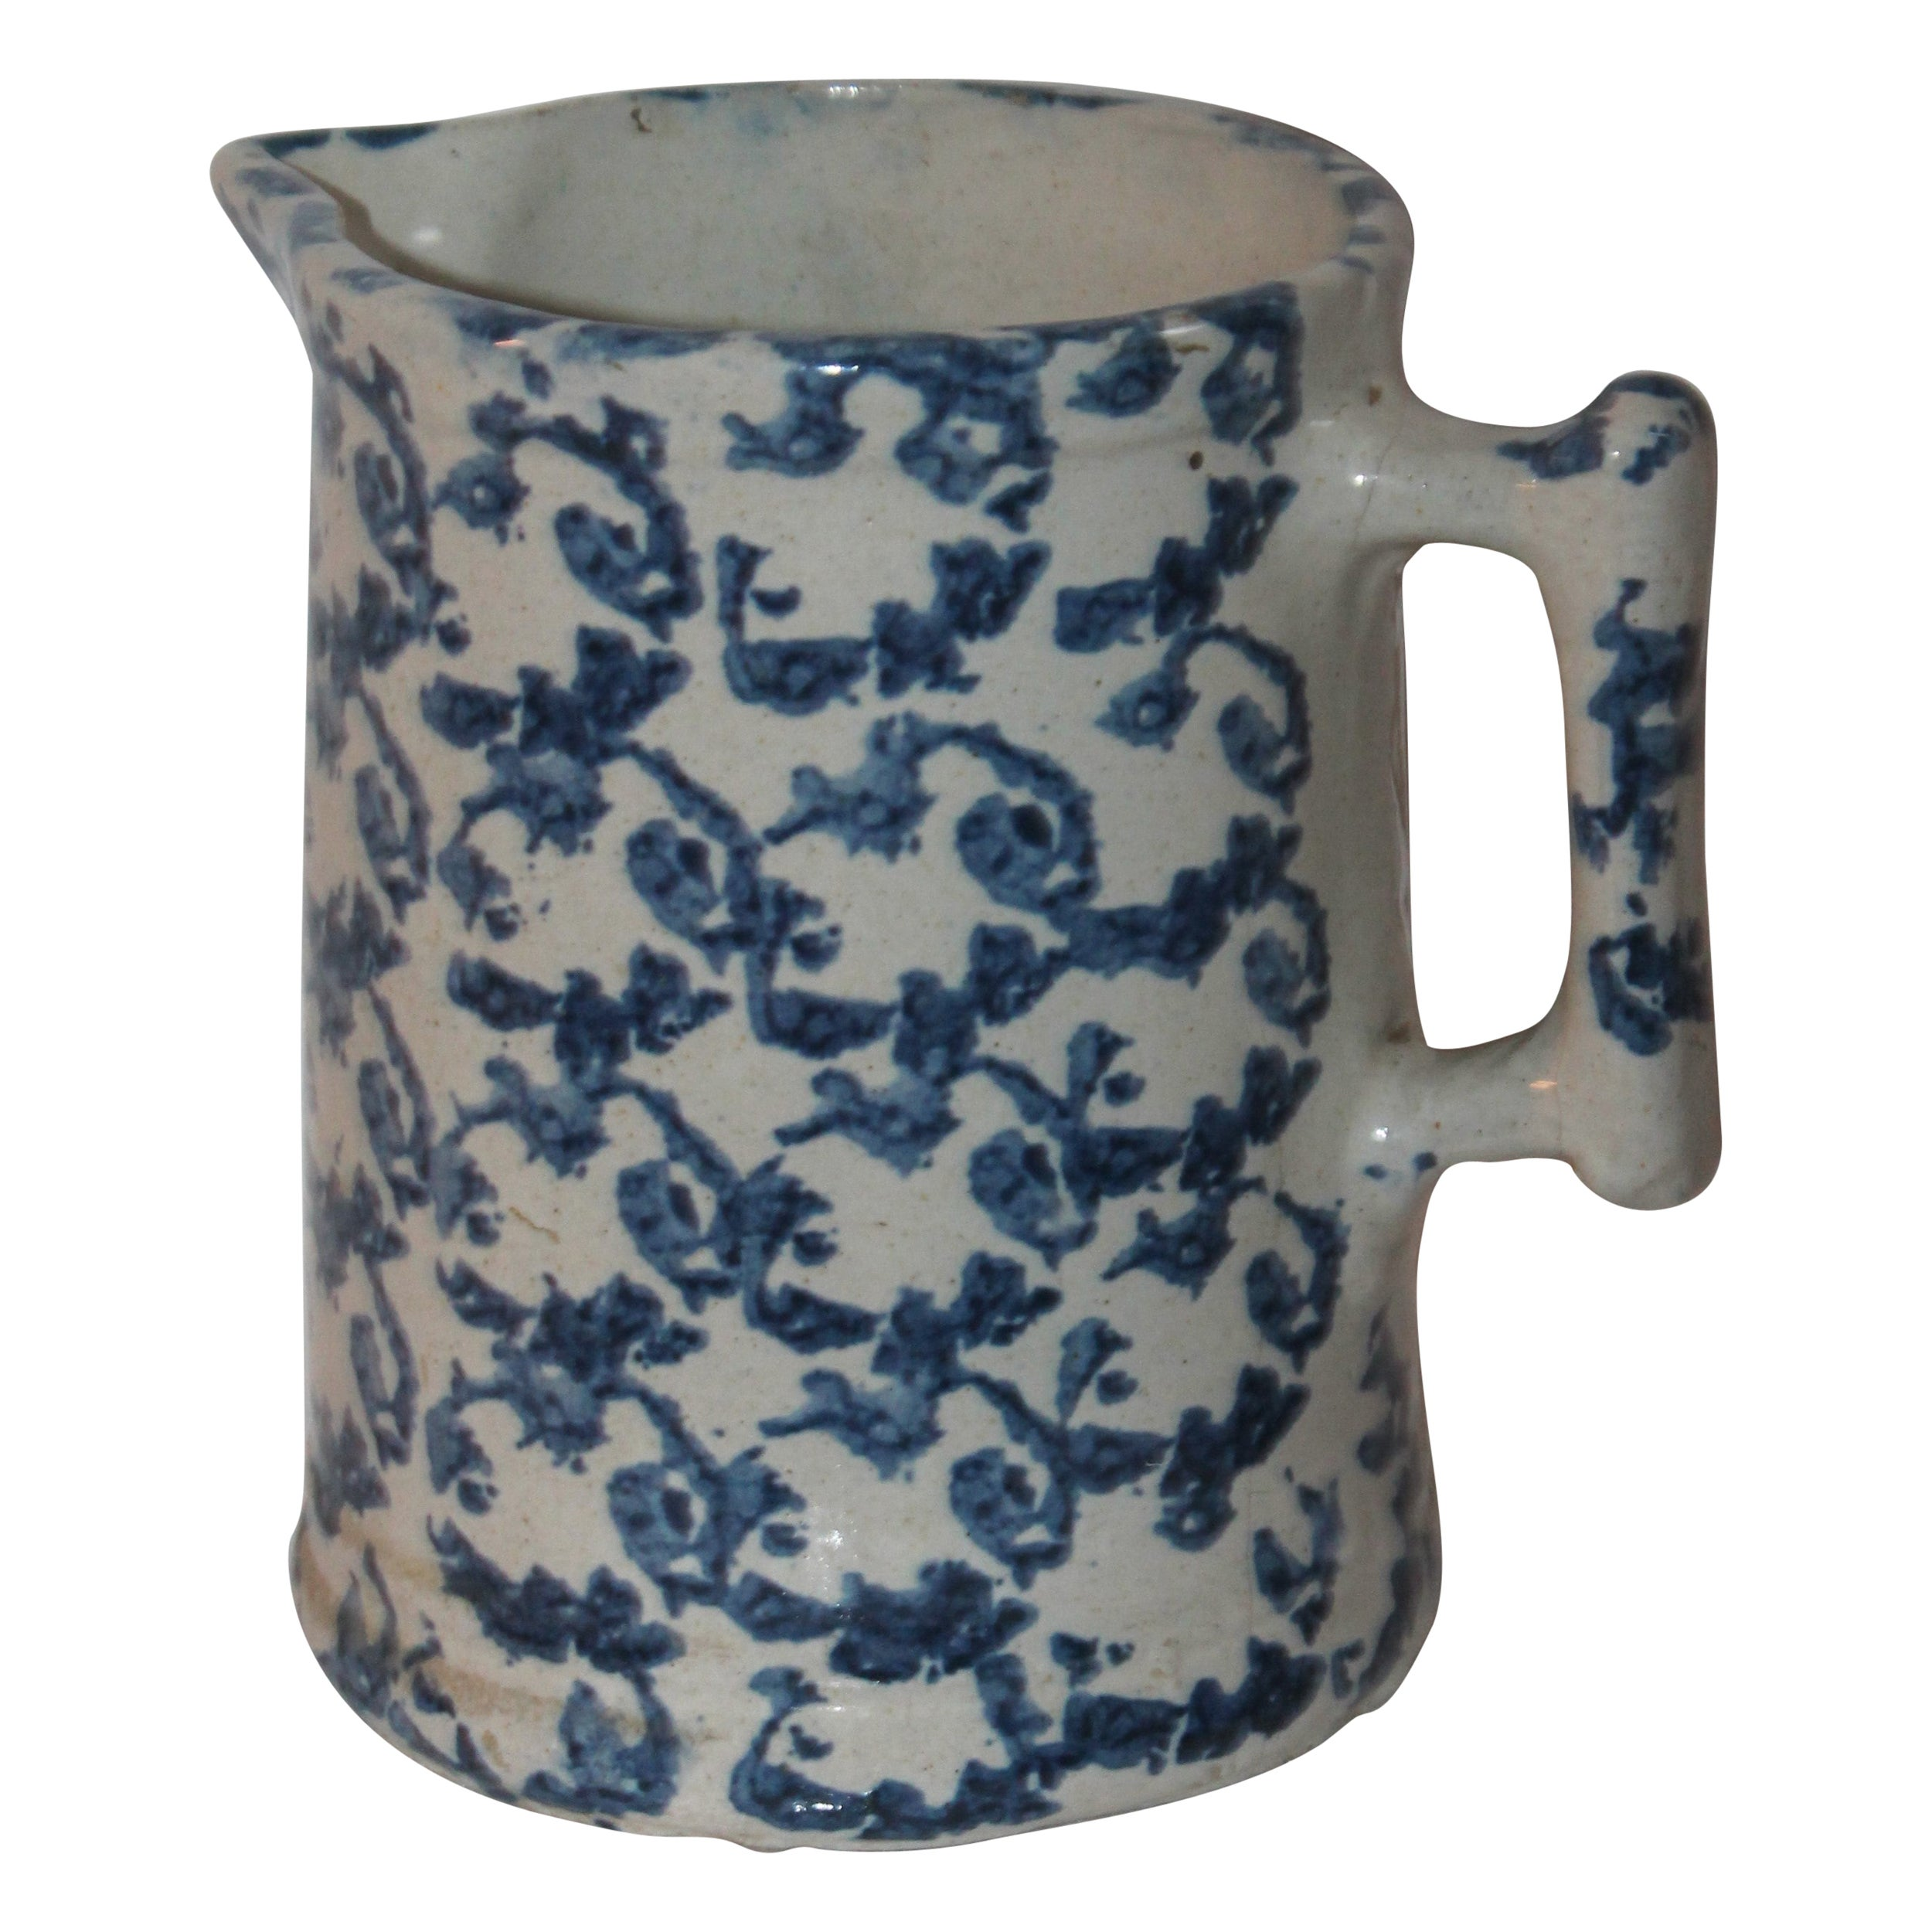 19th Century Sponge Ware Pitcher in Pattern Design